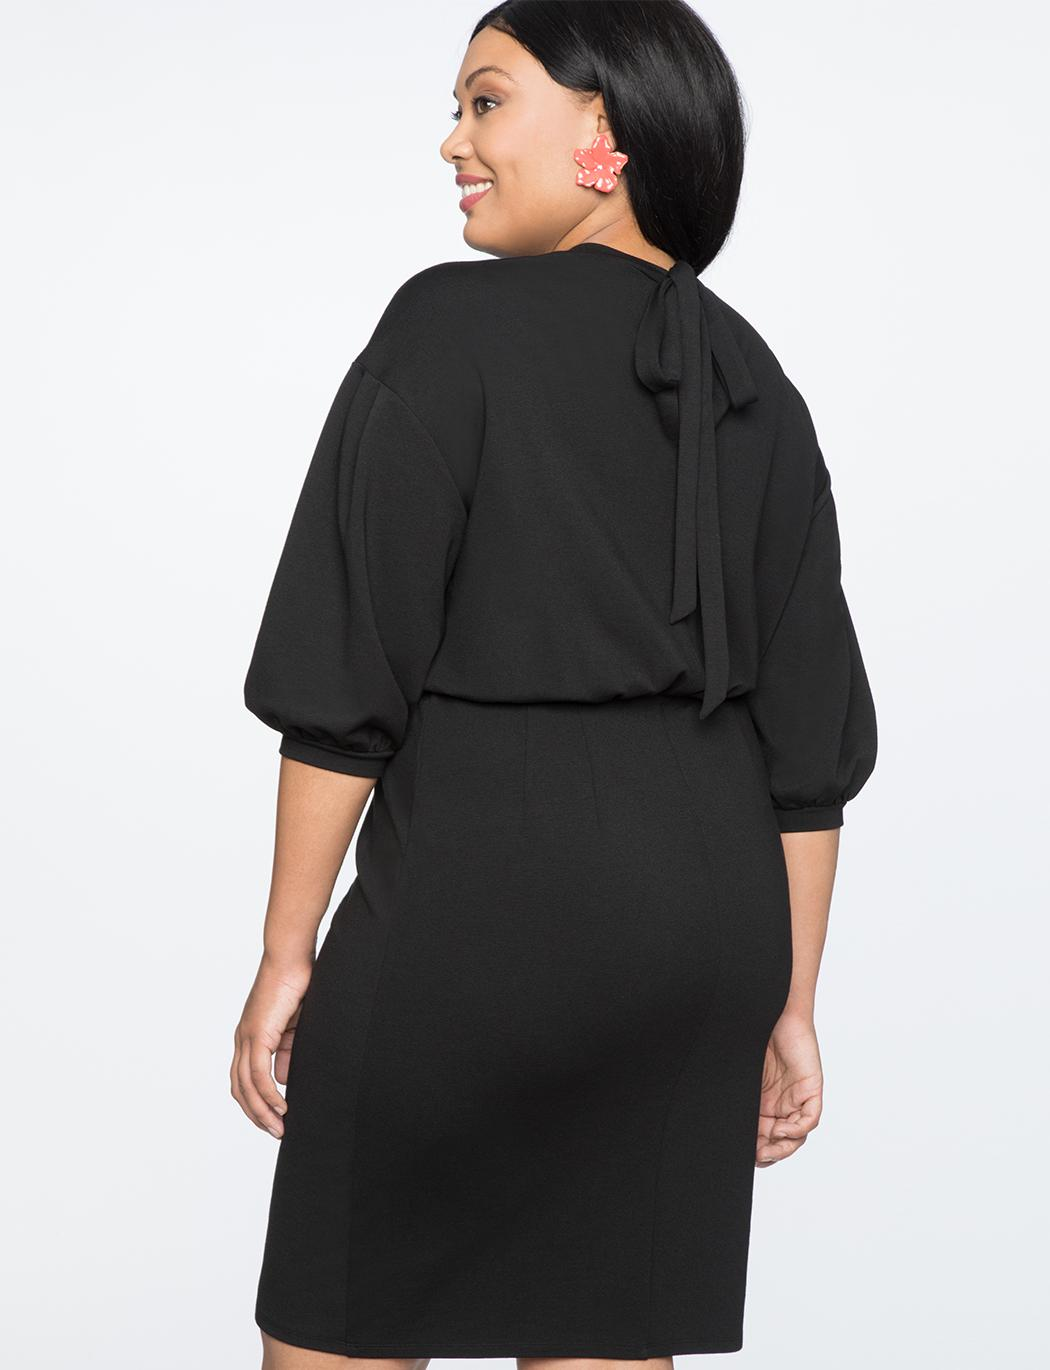 e57f715827 ... Puff Sleeve Tie Back Ponte Dress - Lyst. View fullscreen